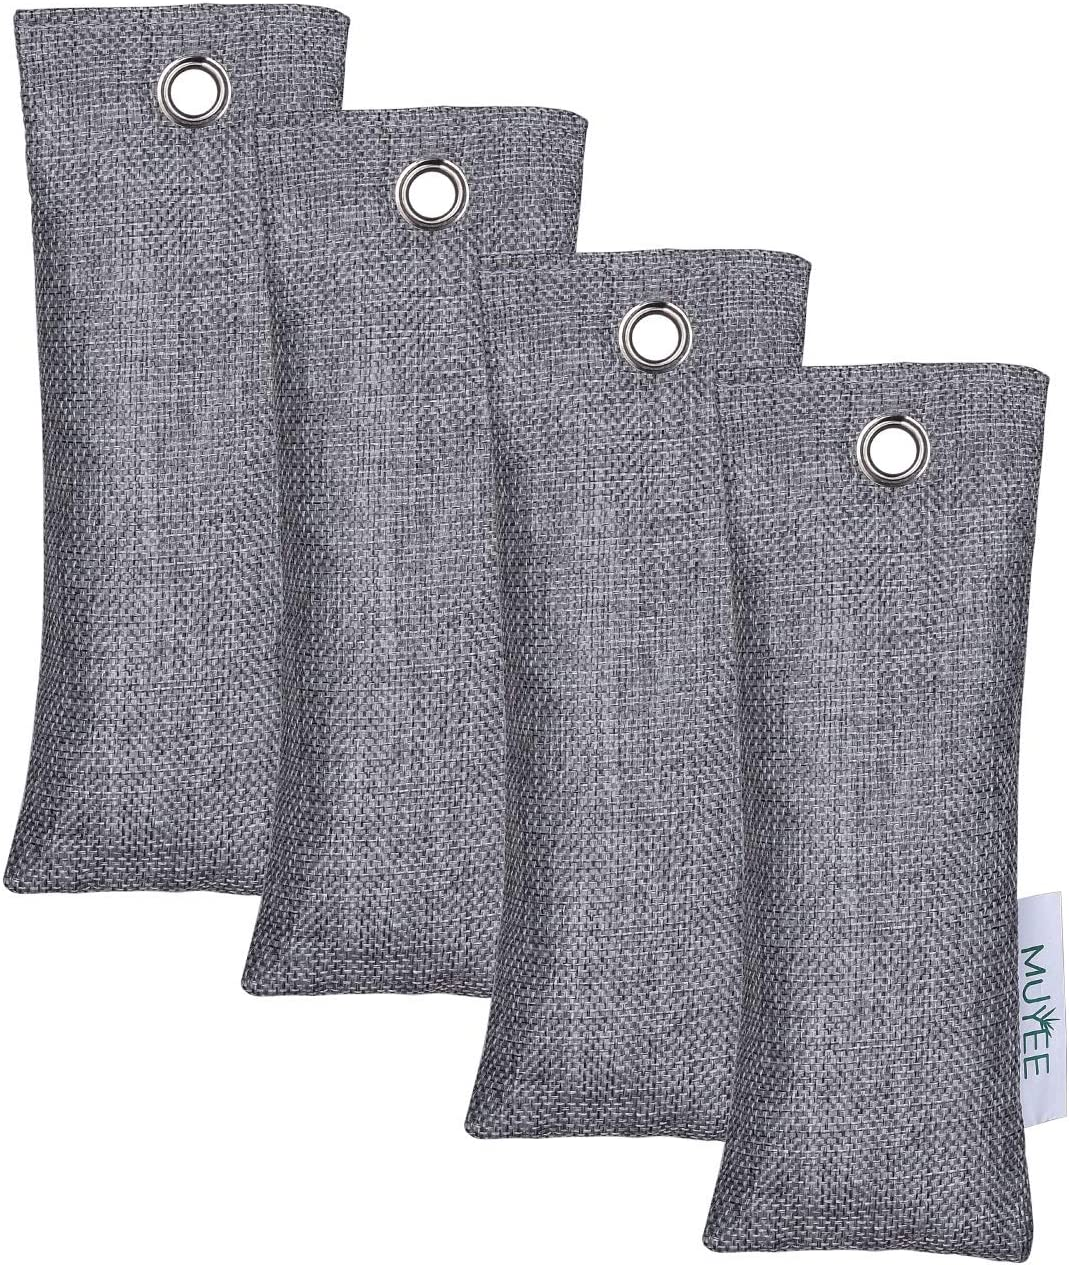 Muyee Bamboo Charcoal Bags 4 Pack, Freshen Odor Absorber Bags, Breathe Green Charcoal Bags for Home, Car, Closet (4 x 75g)